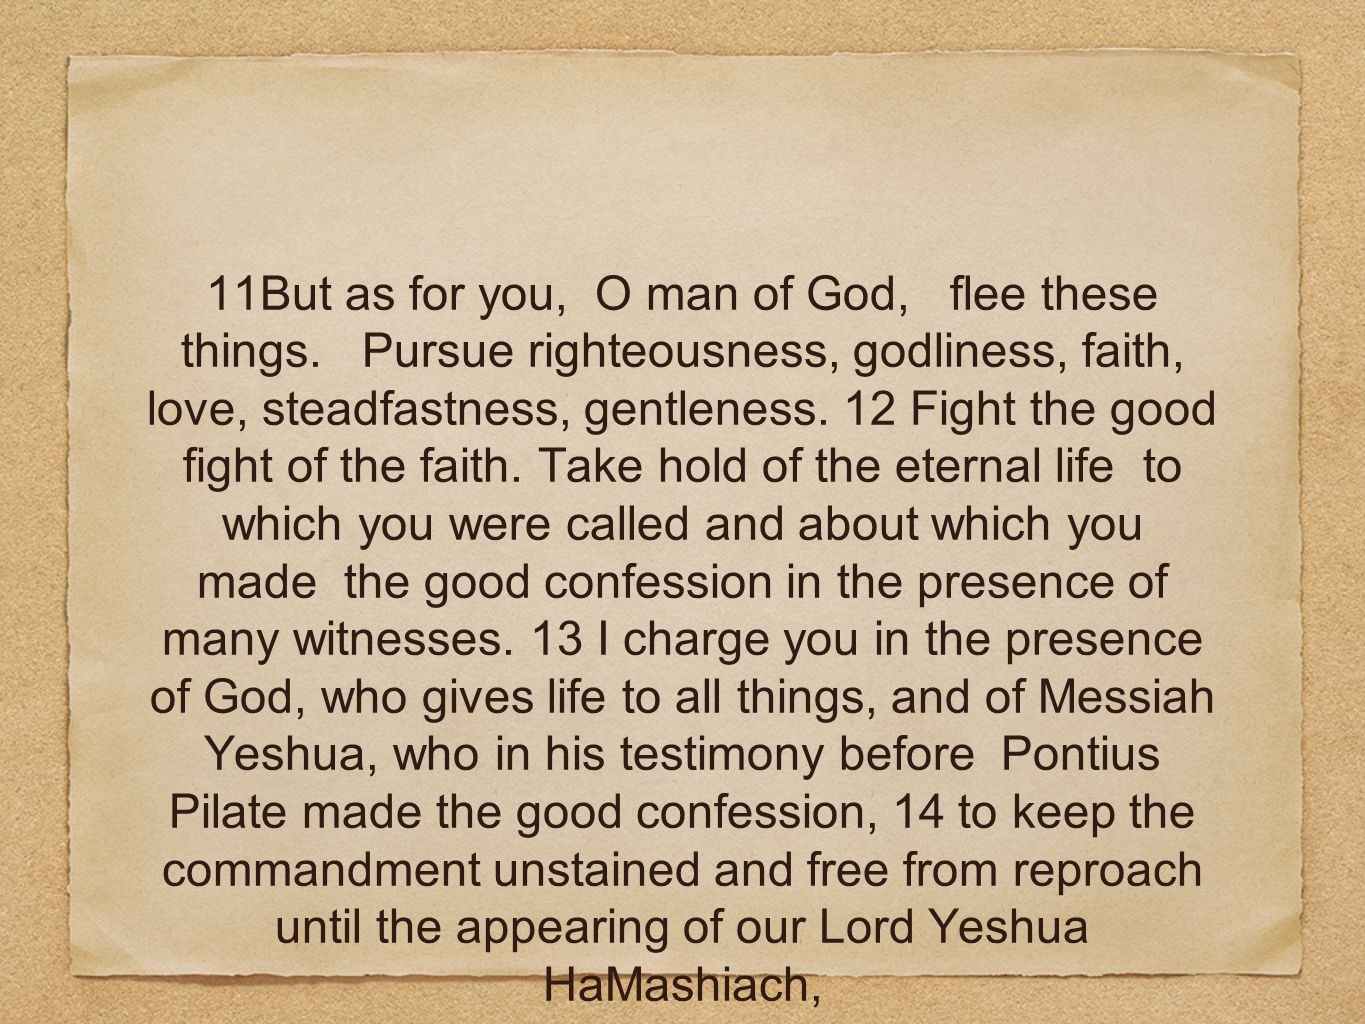 11But as for you, O man of God, flee these things. Pursue righteousness, godliness, faith, love, steadfastness, gentleness. 12 Fight the good fight of